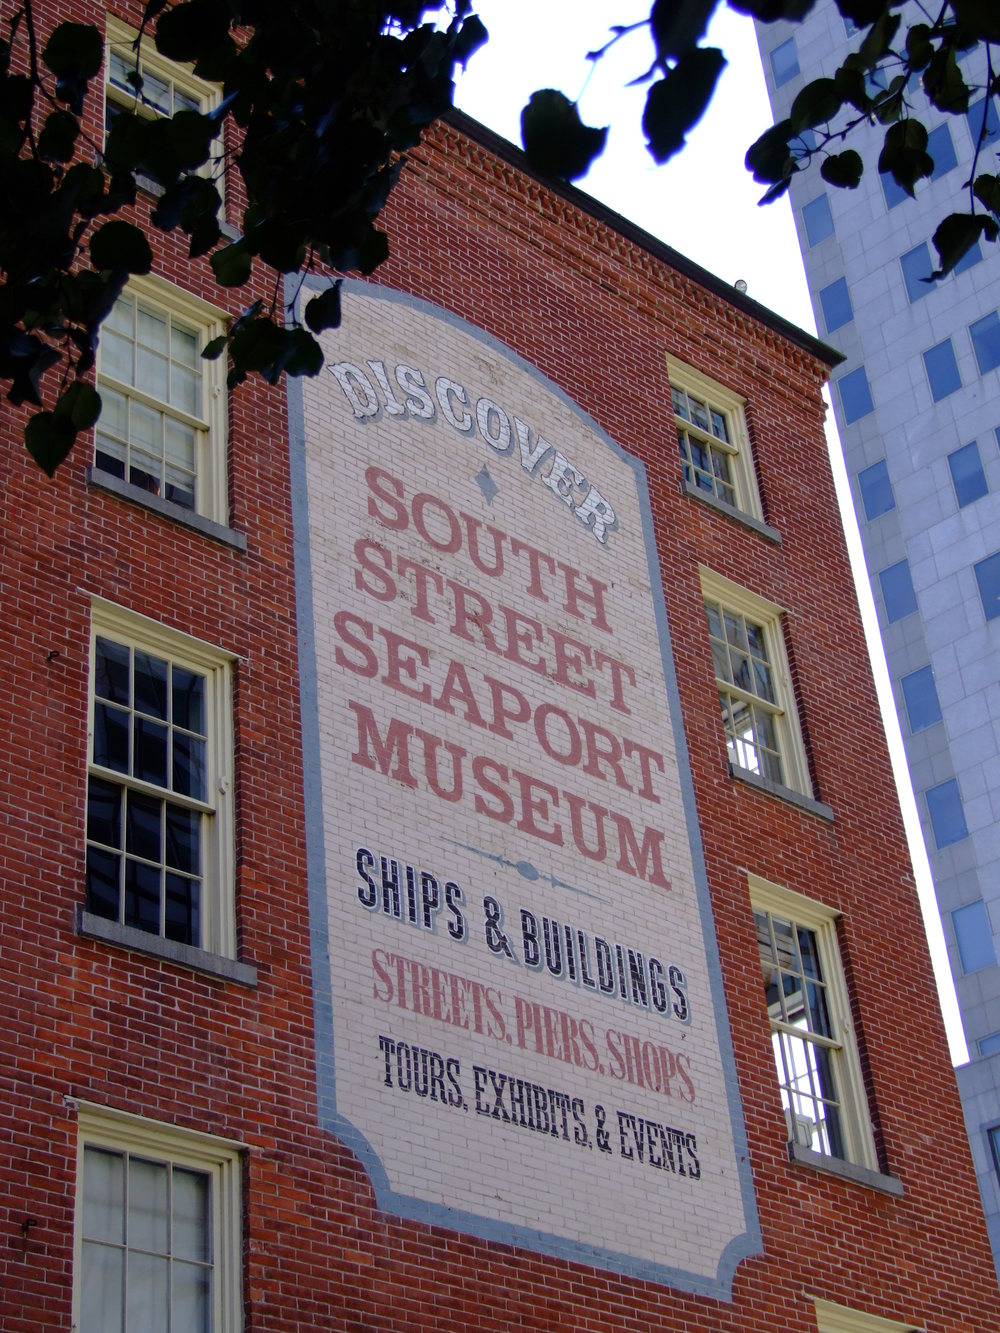 South_Street_Seaport_Museum_Wall_Sign.JPG